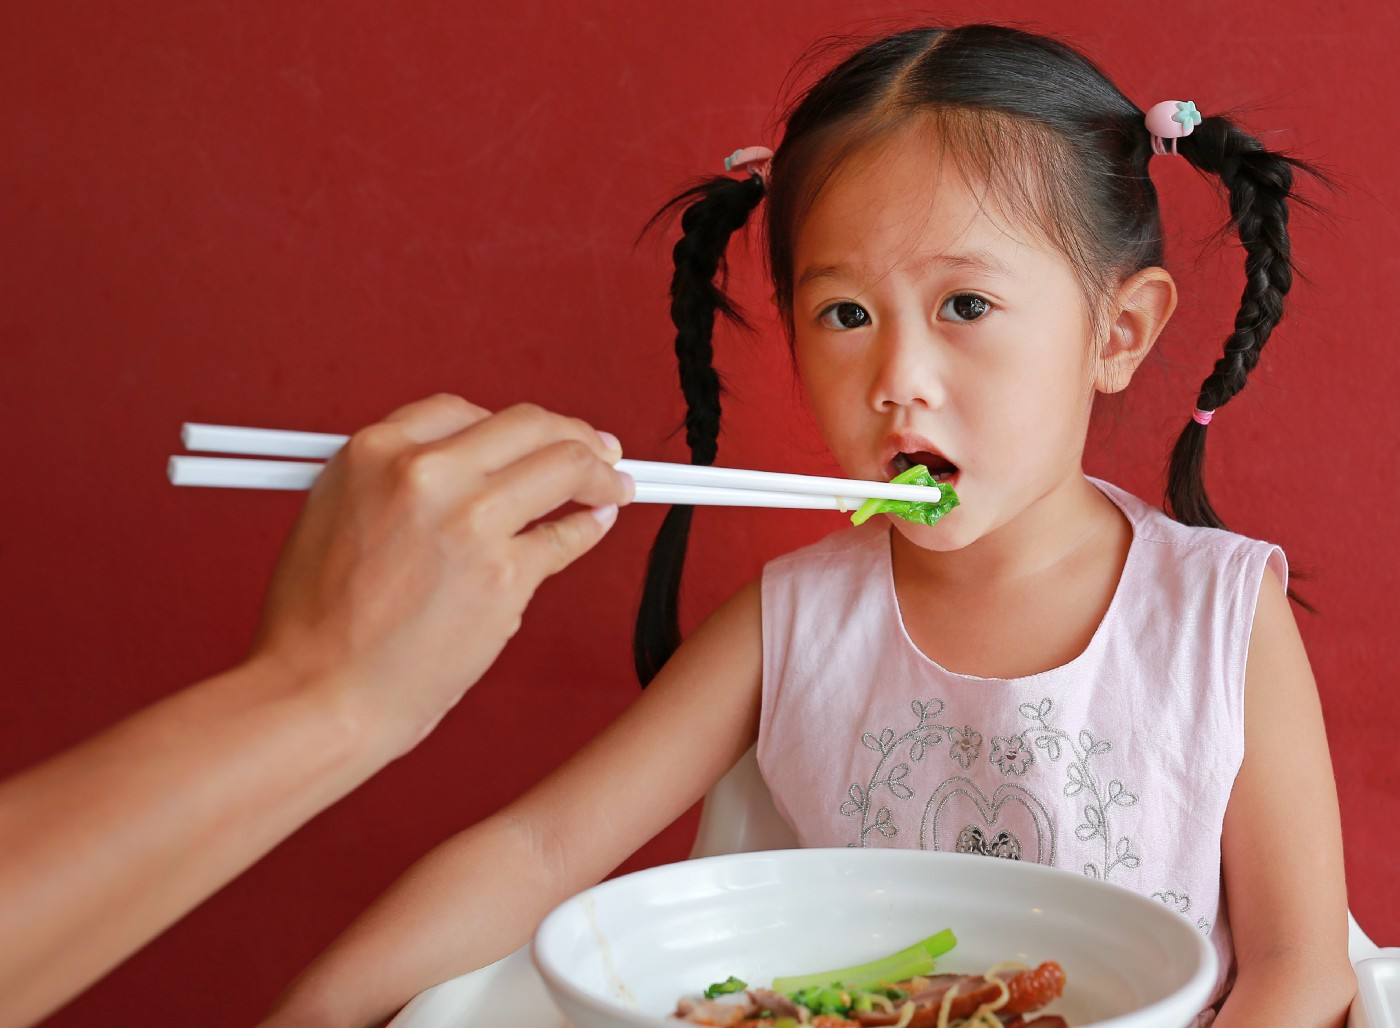 mother-feeding-vegetable-her-daughter-high-chair-against-red-wall-background—Un Swede